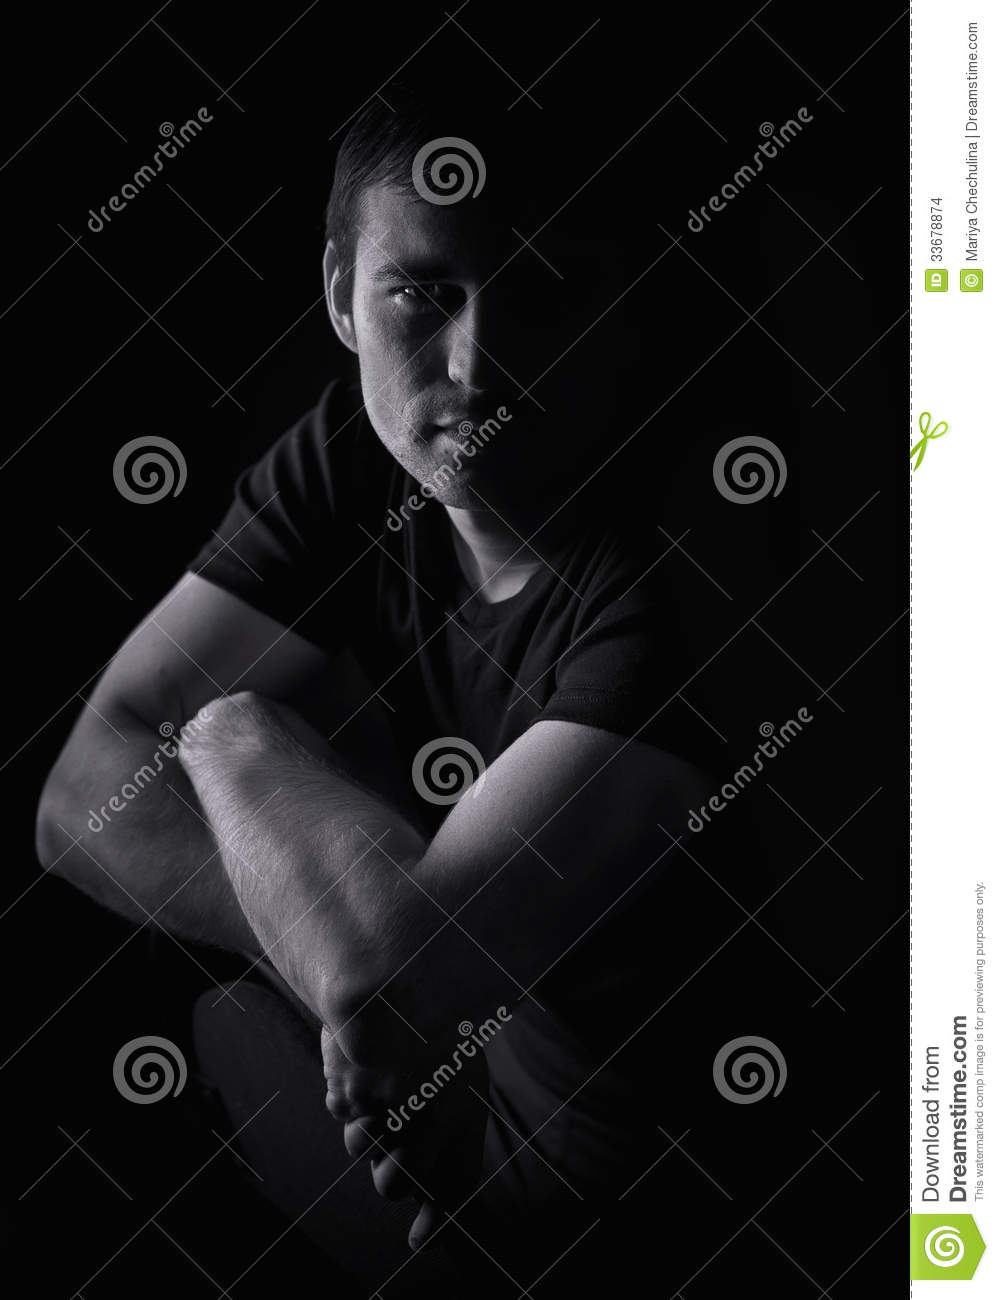 dramatic studio lighting. Black And White Portrait Of A Young Man Stock Photo - Image Brutality, Courage: 33678874 Dramatic Studio Lighting